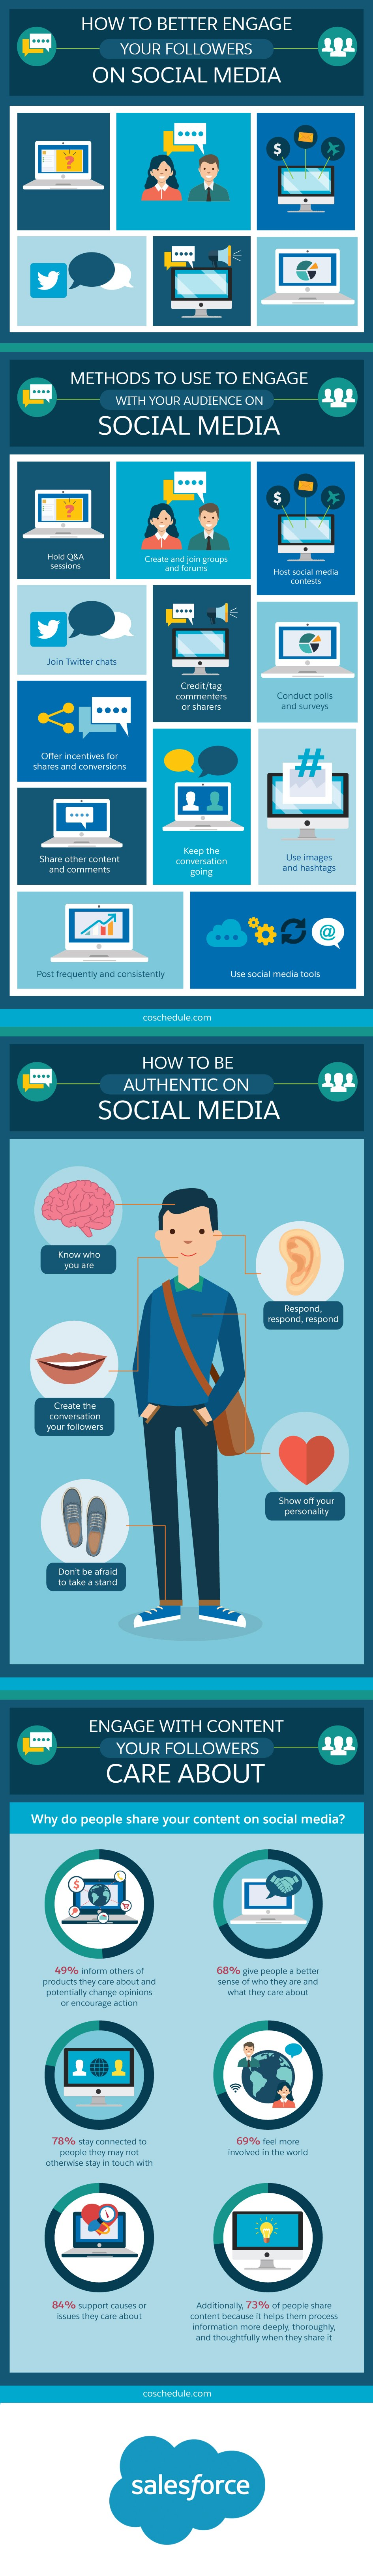 How to Better Engage Your Followers on Social Media [Infographic] | Social Media Today